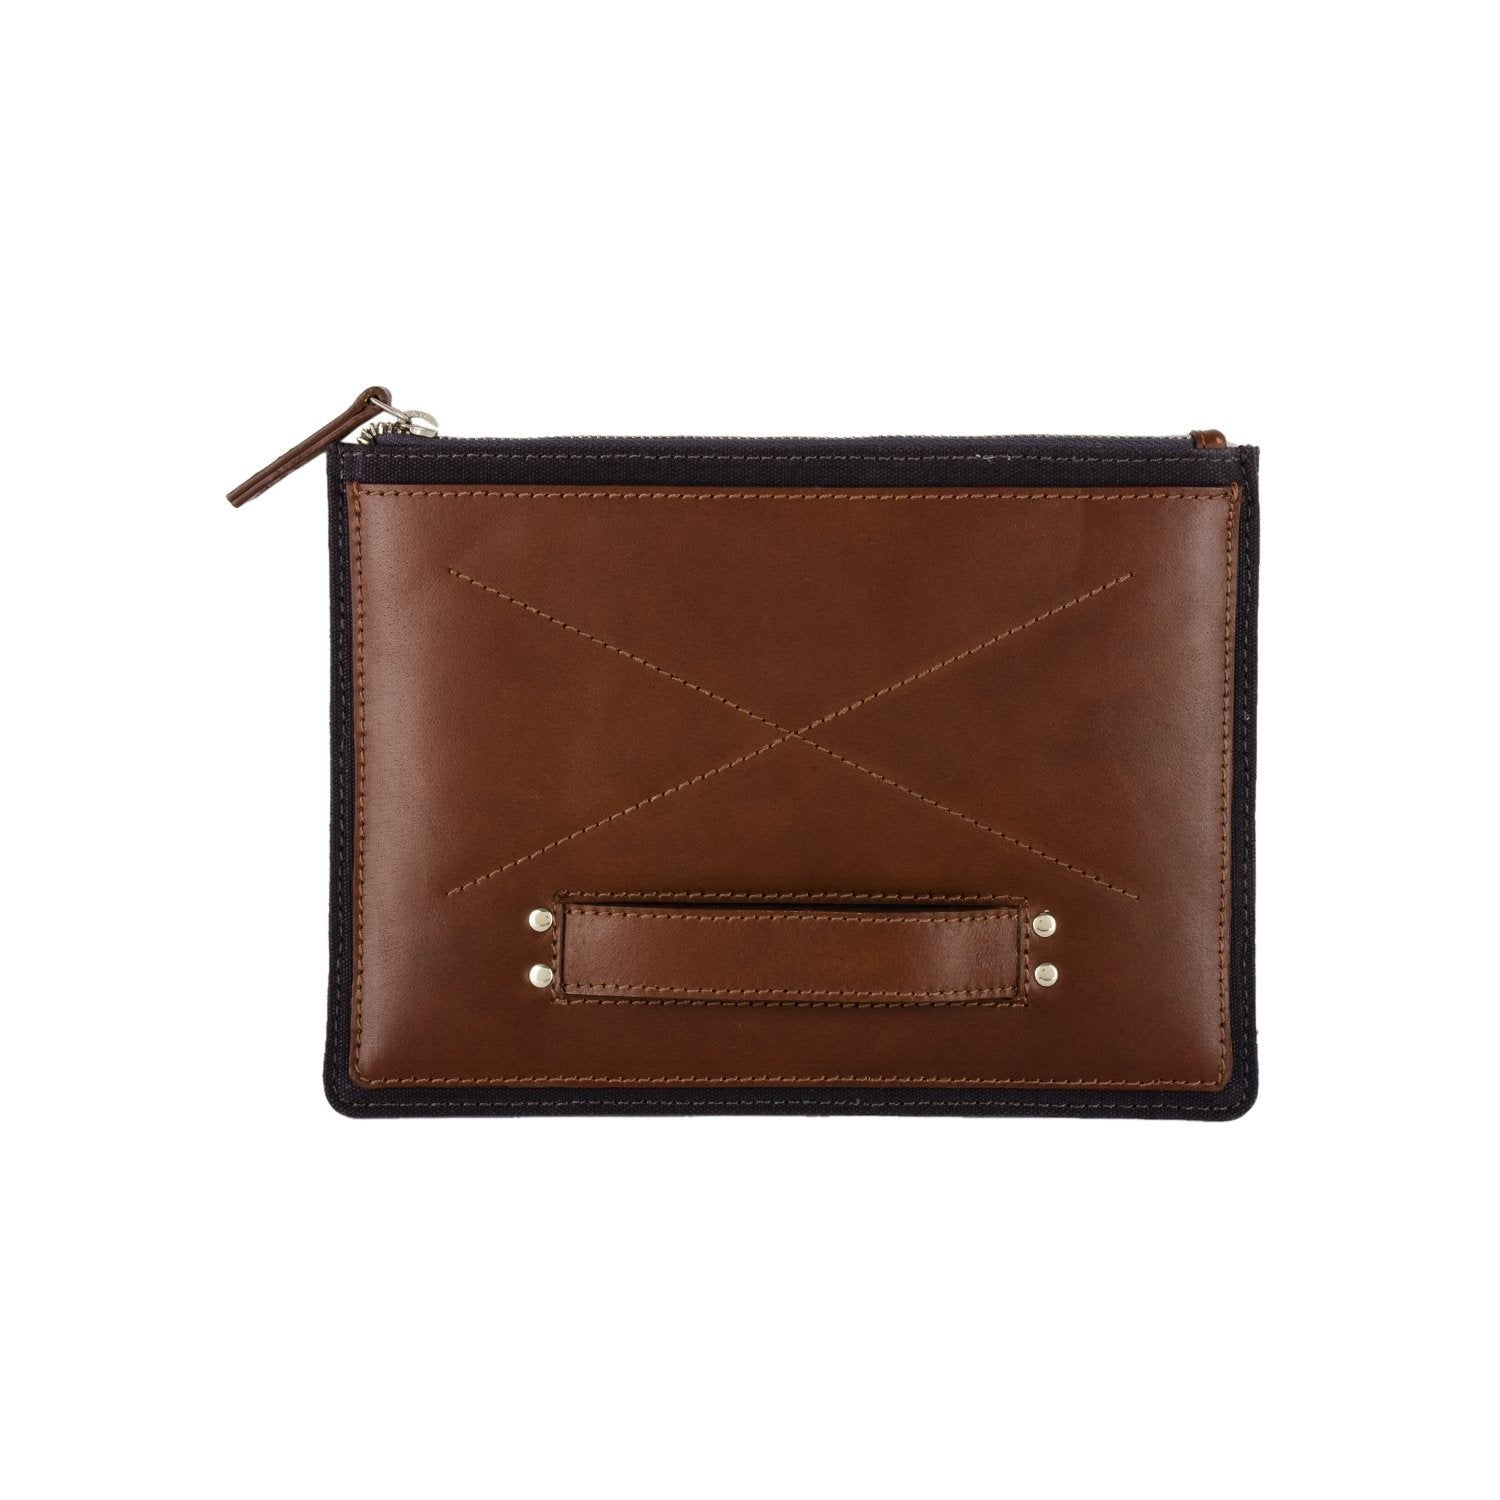 Phive Rivers Men's Leather Ipad Sleeve - Prm1316